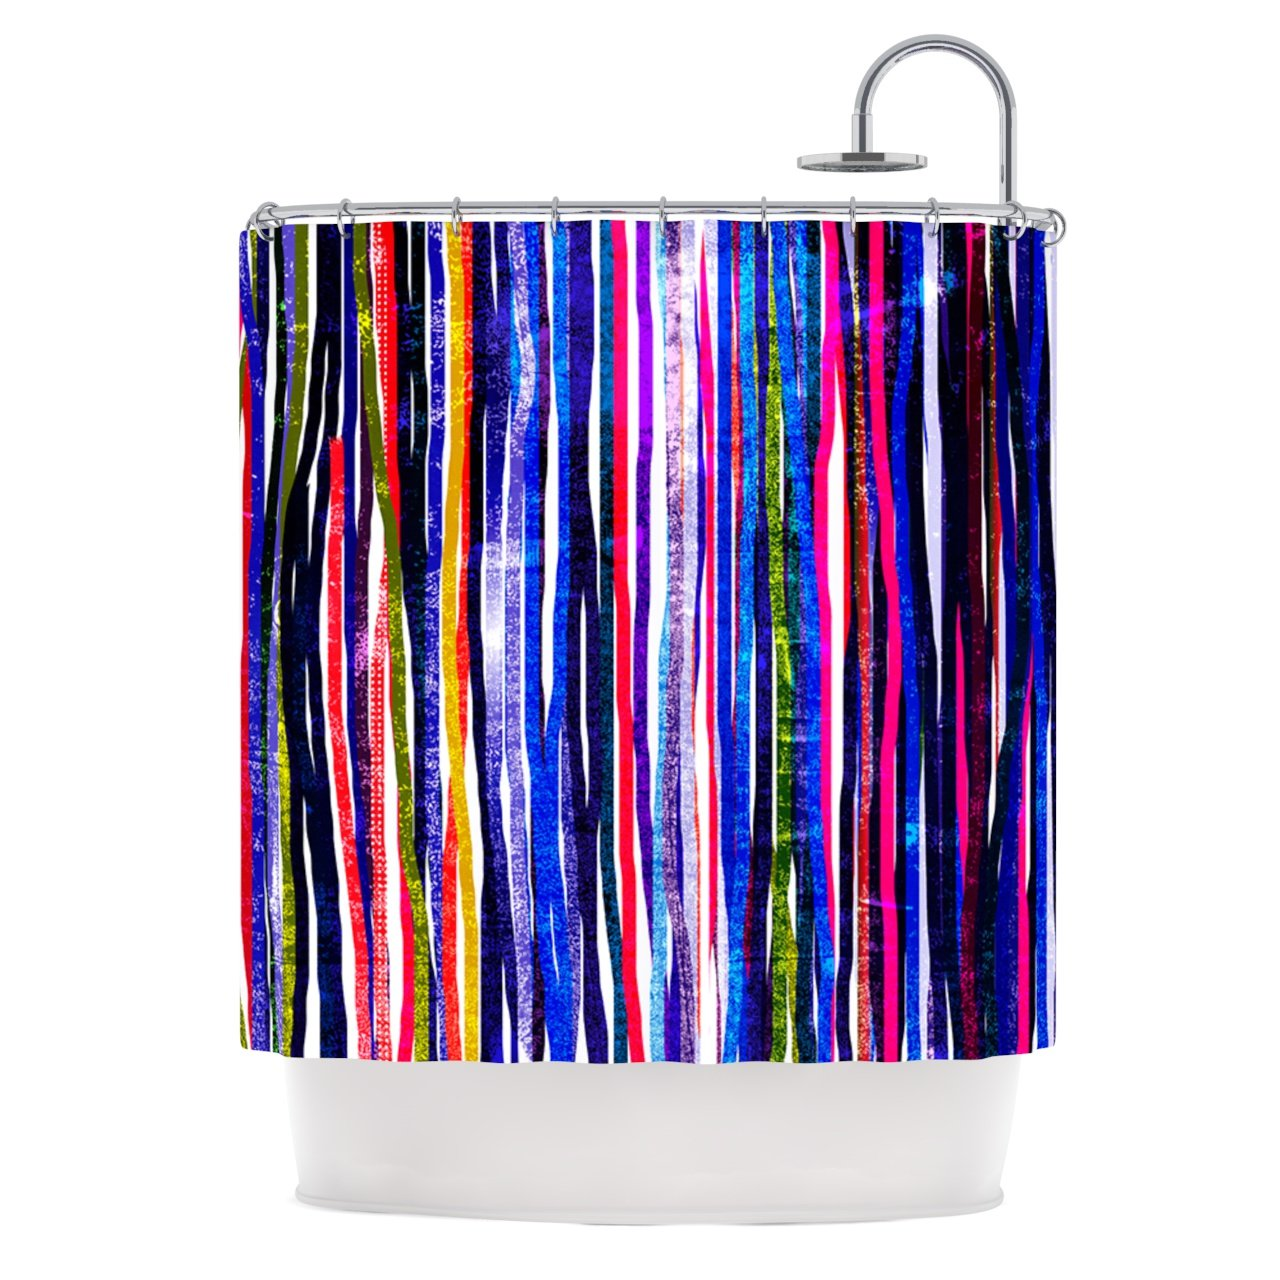 Kess InHouse Frederic Levy-Hadida Fancy Stripes Purple 69 x 70 Shower Curtain